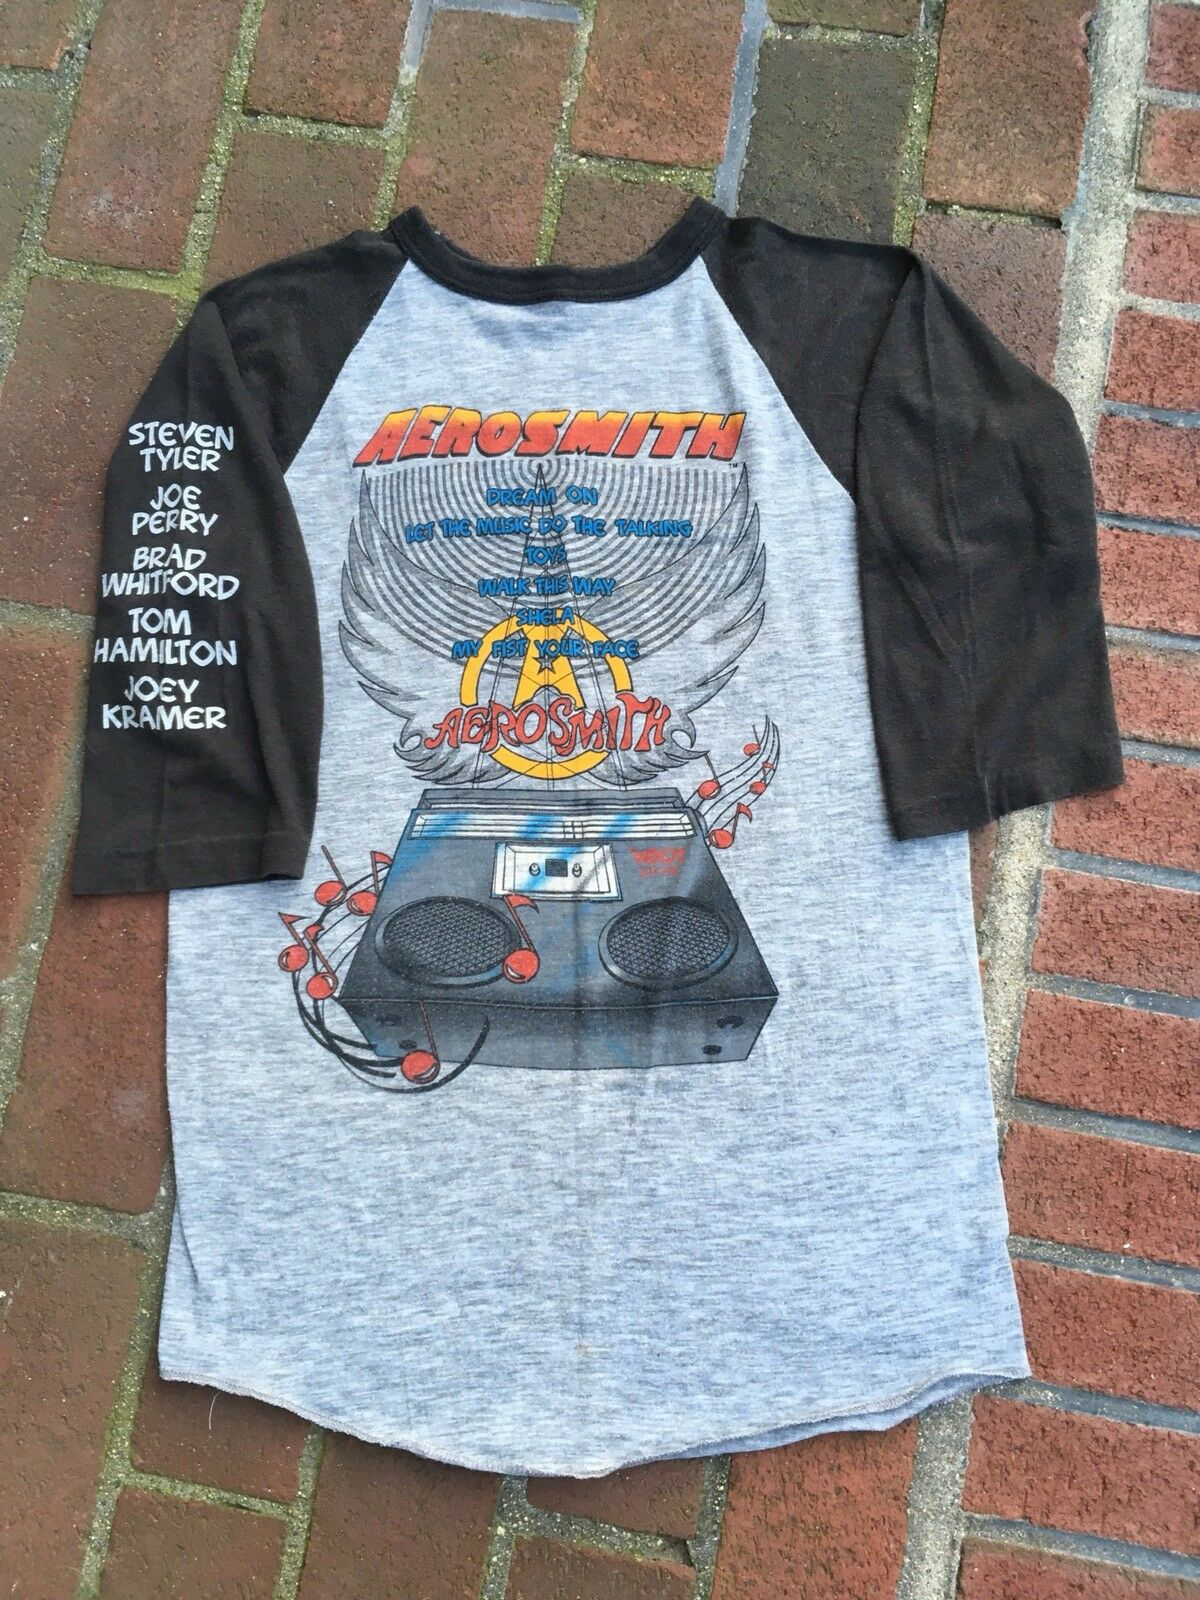 Vintage Aerosmith Shirt 1986 3/4 Length Baseball Shirt sz Med